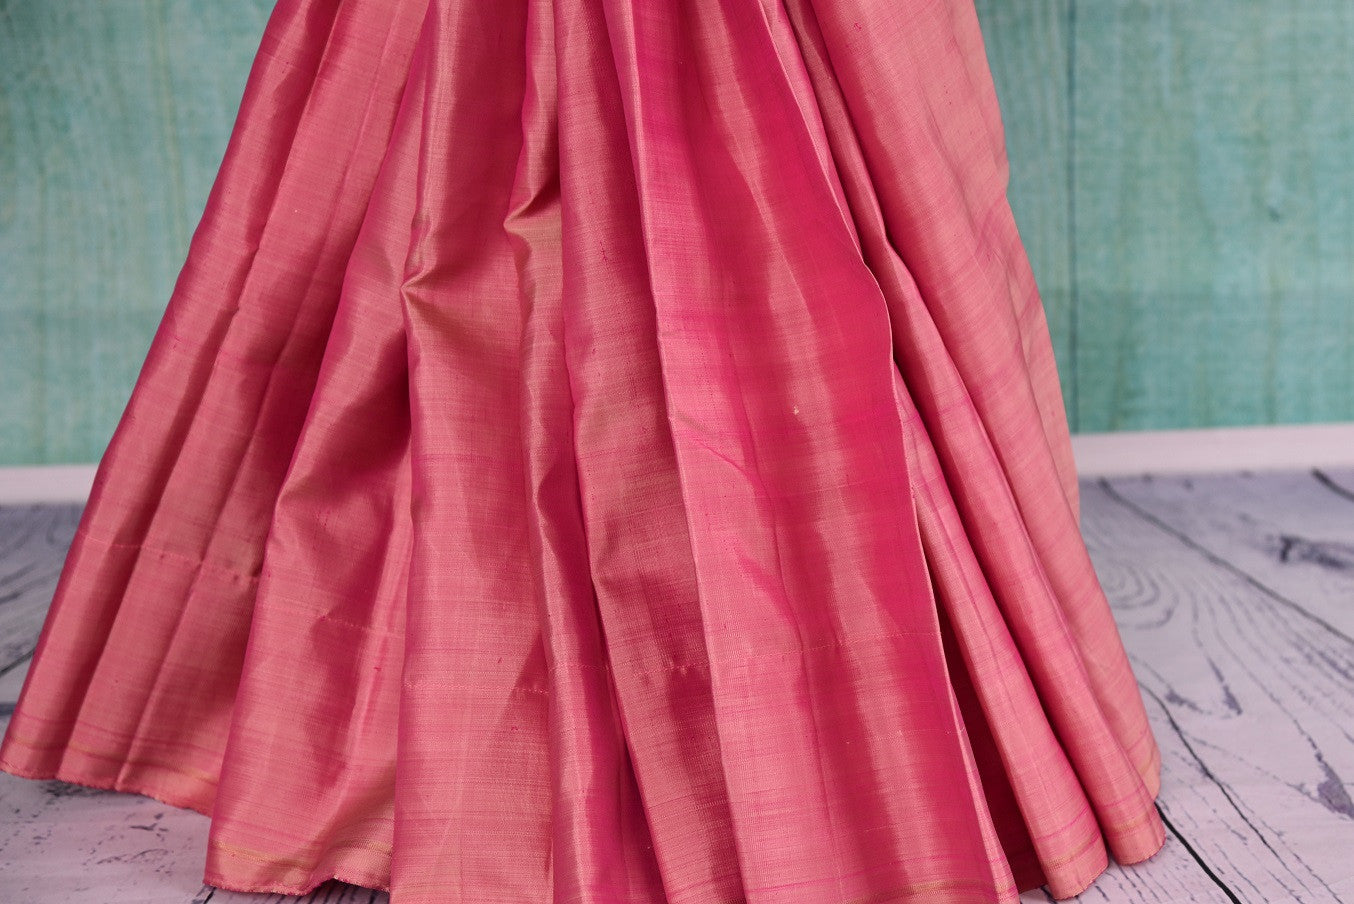 90D419 - Traditional pink kanjivaram saree that's a versatile Indian outfit. The plain saree is available at our ethnic clothing store - Pure Elegance, online and at our shop in Edison, USA.